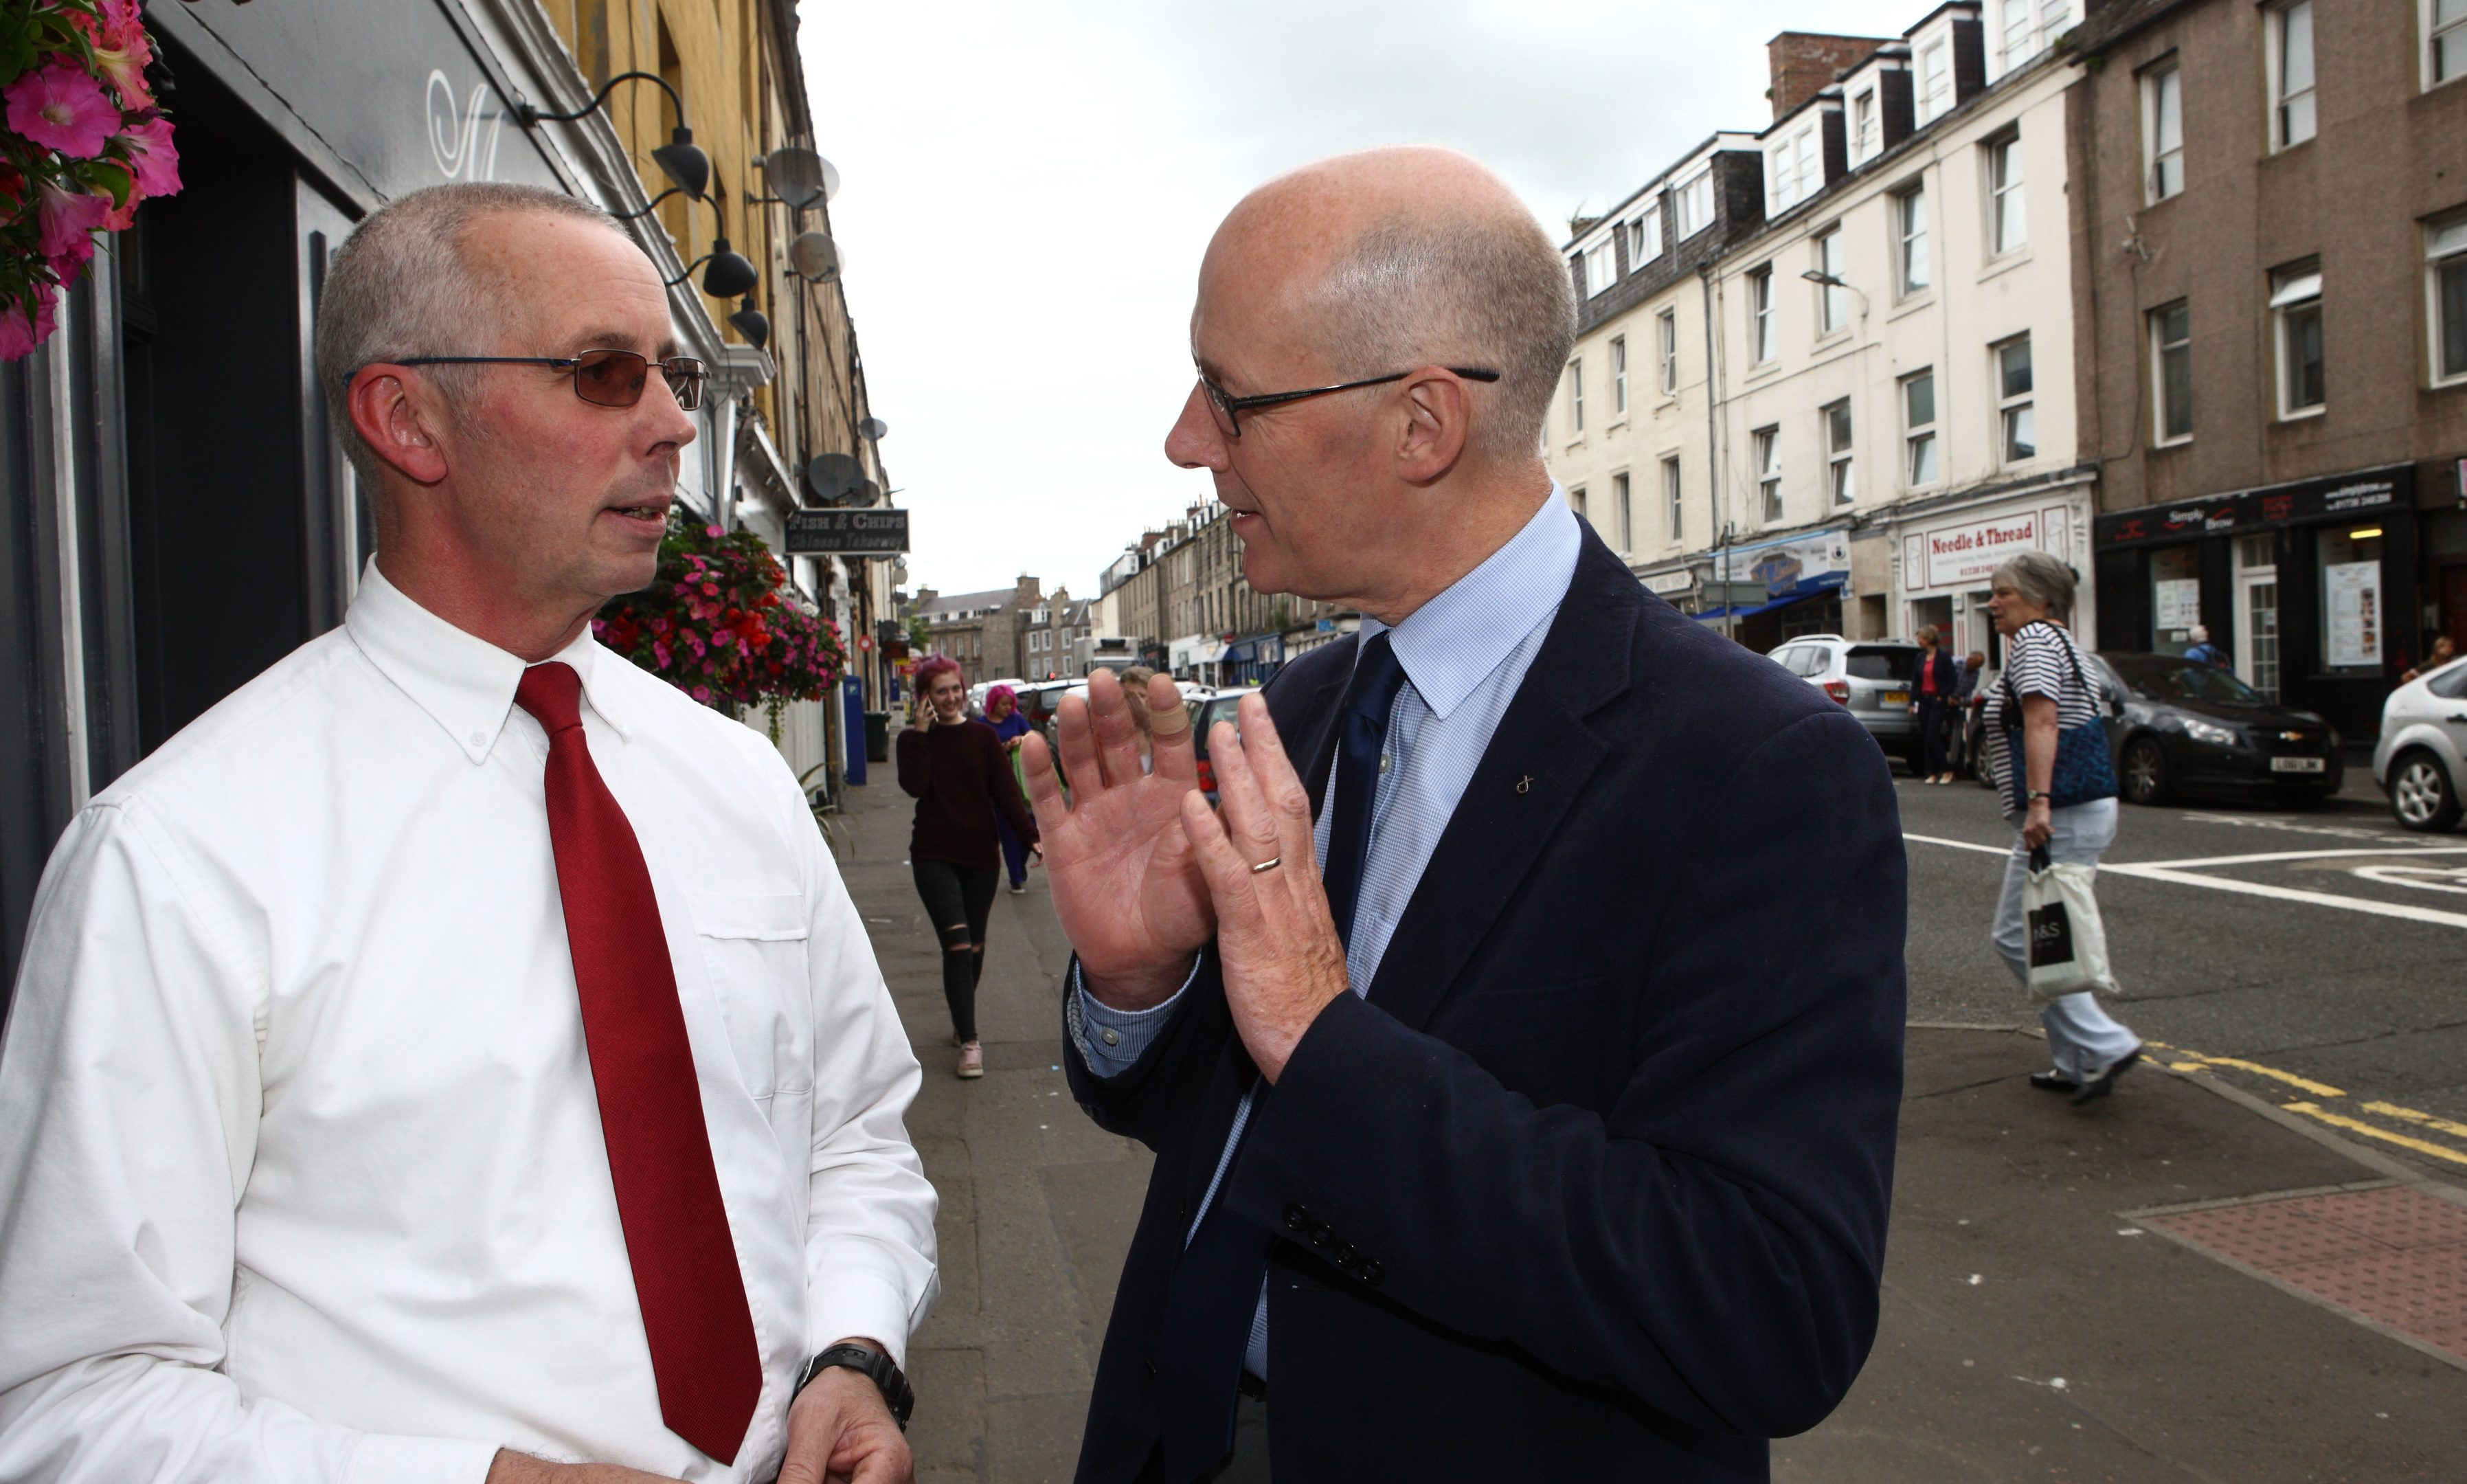 Deputy First Minister John swinney MSP tours N Methven St in Perth with Keith Fergie